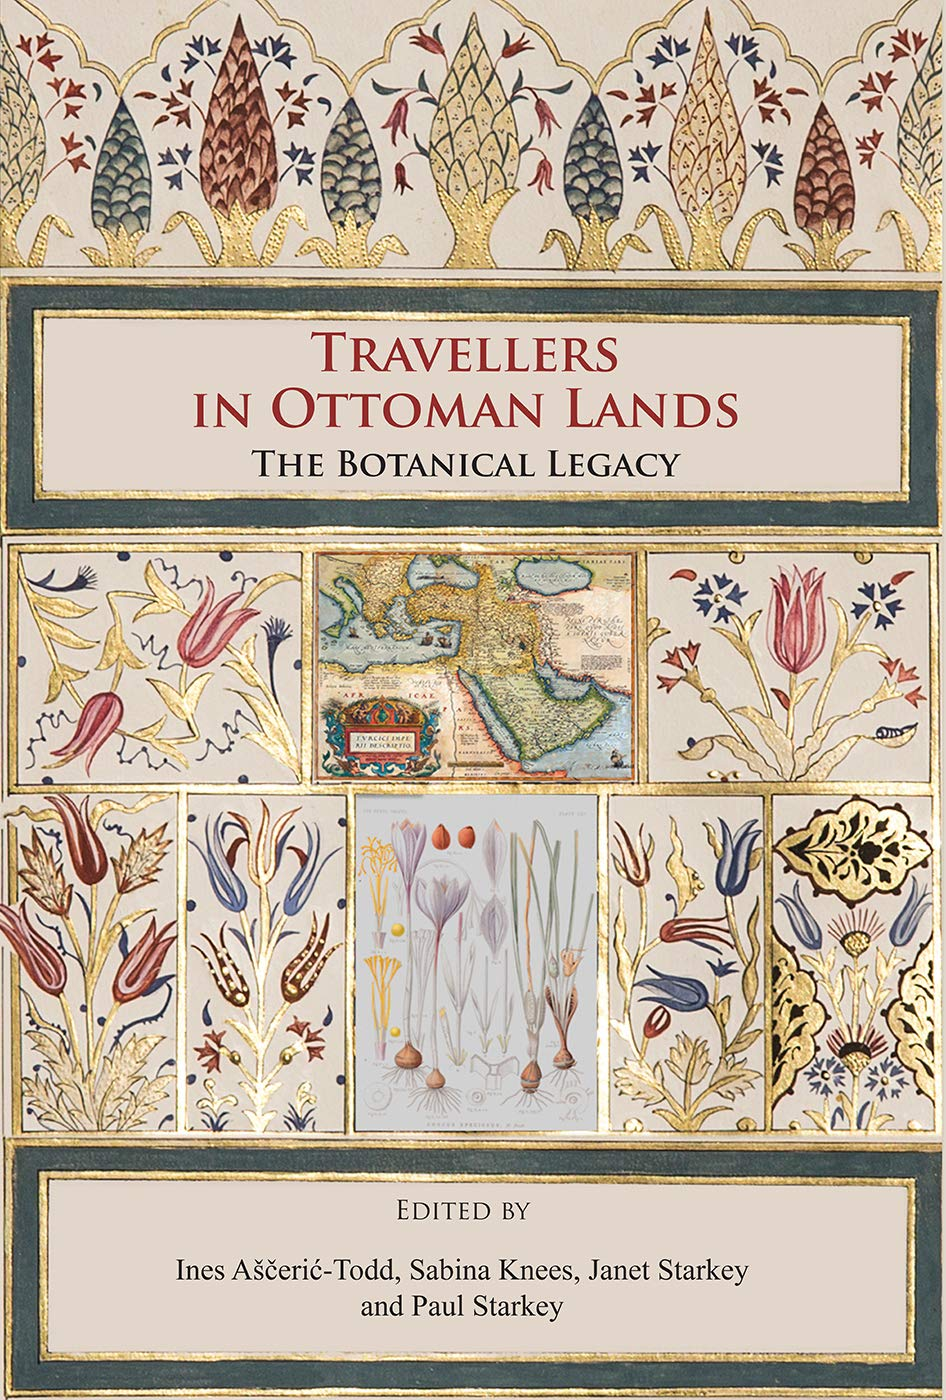 Travellers in Ottoman Lands: The Botanical Legacy